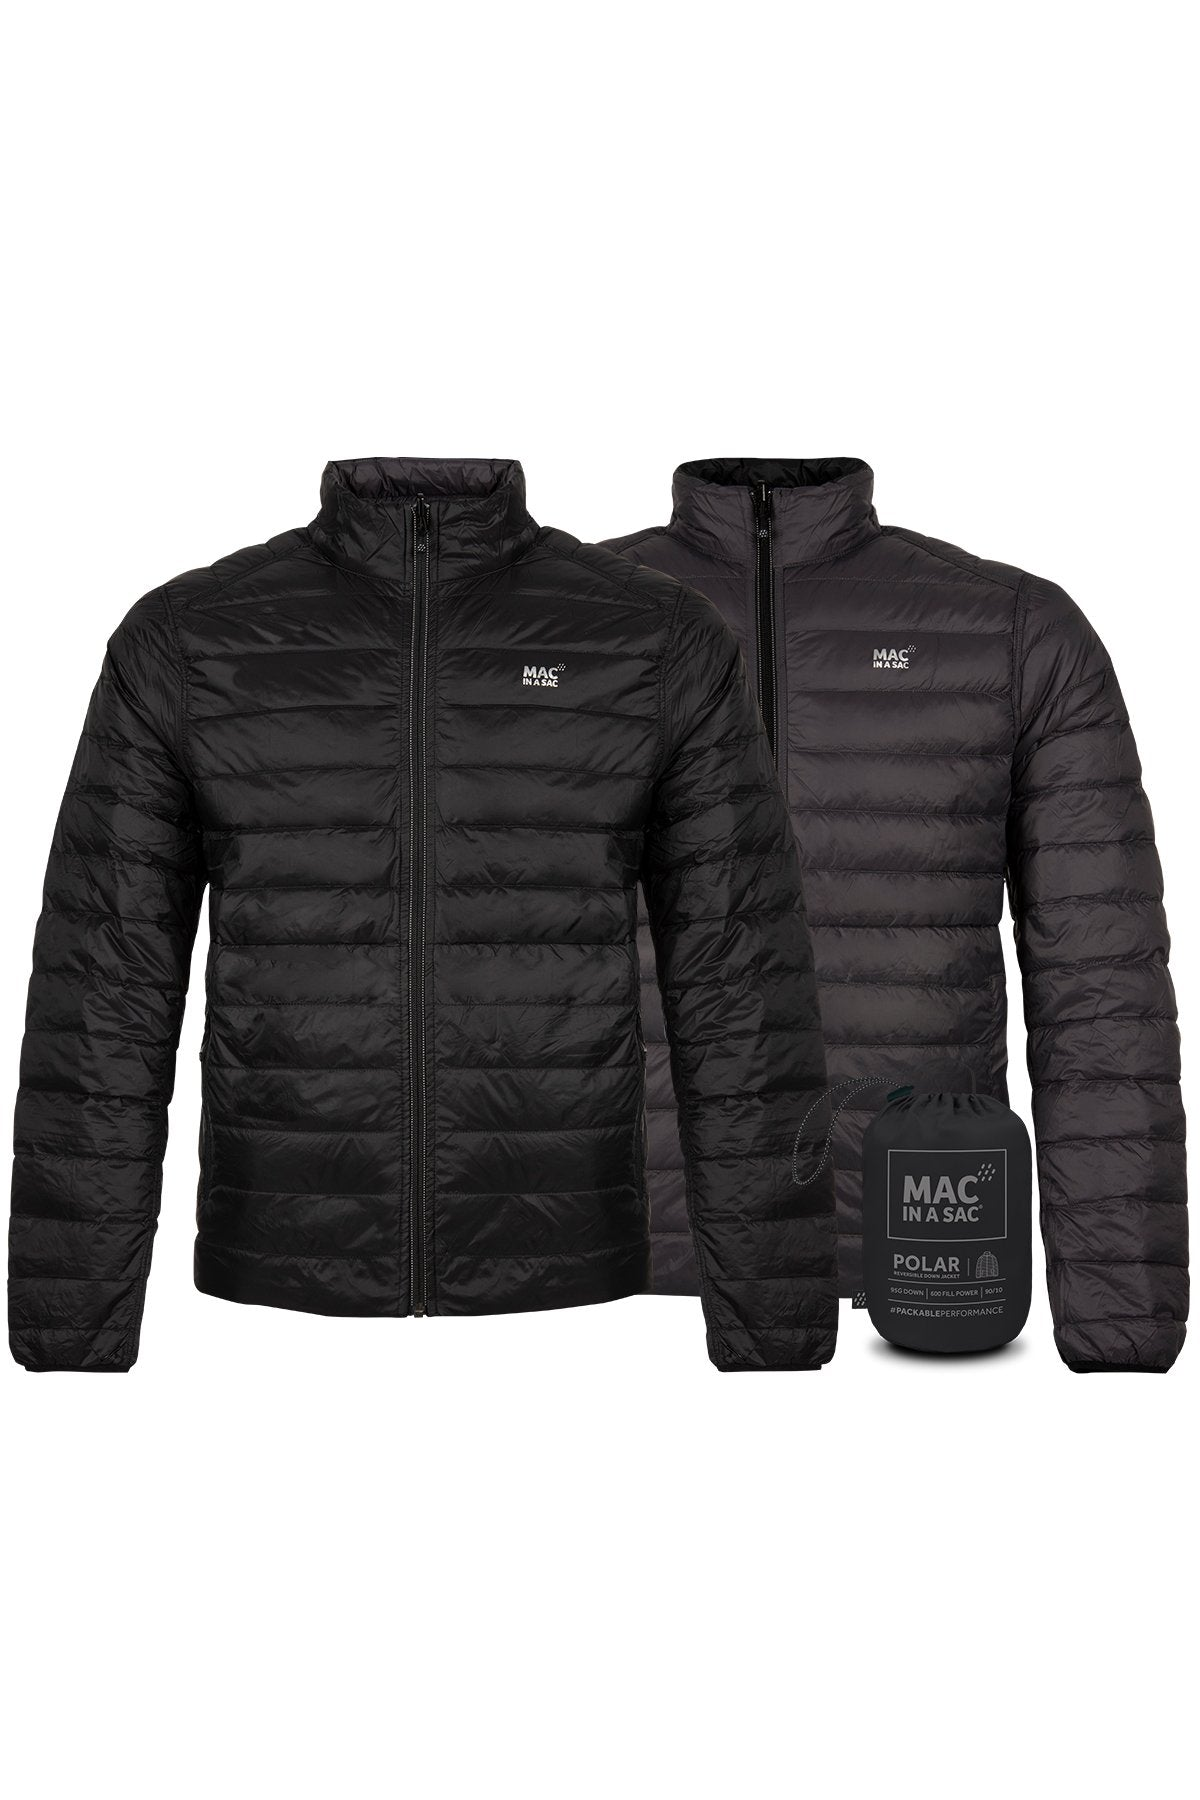 Polar II Mens Reversible Down Jacket - Jet Black - Charcoal